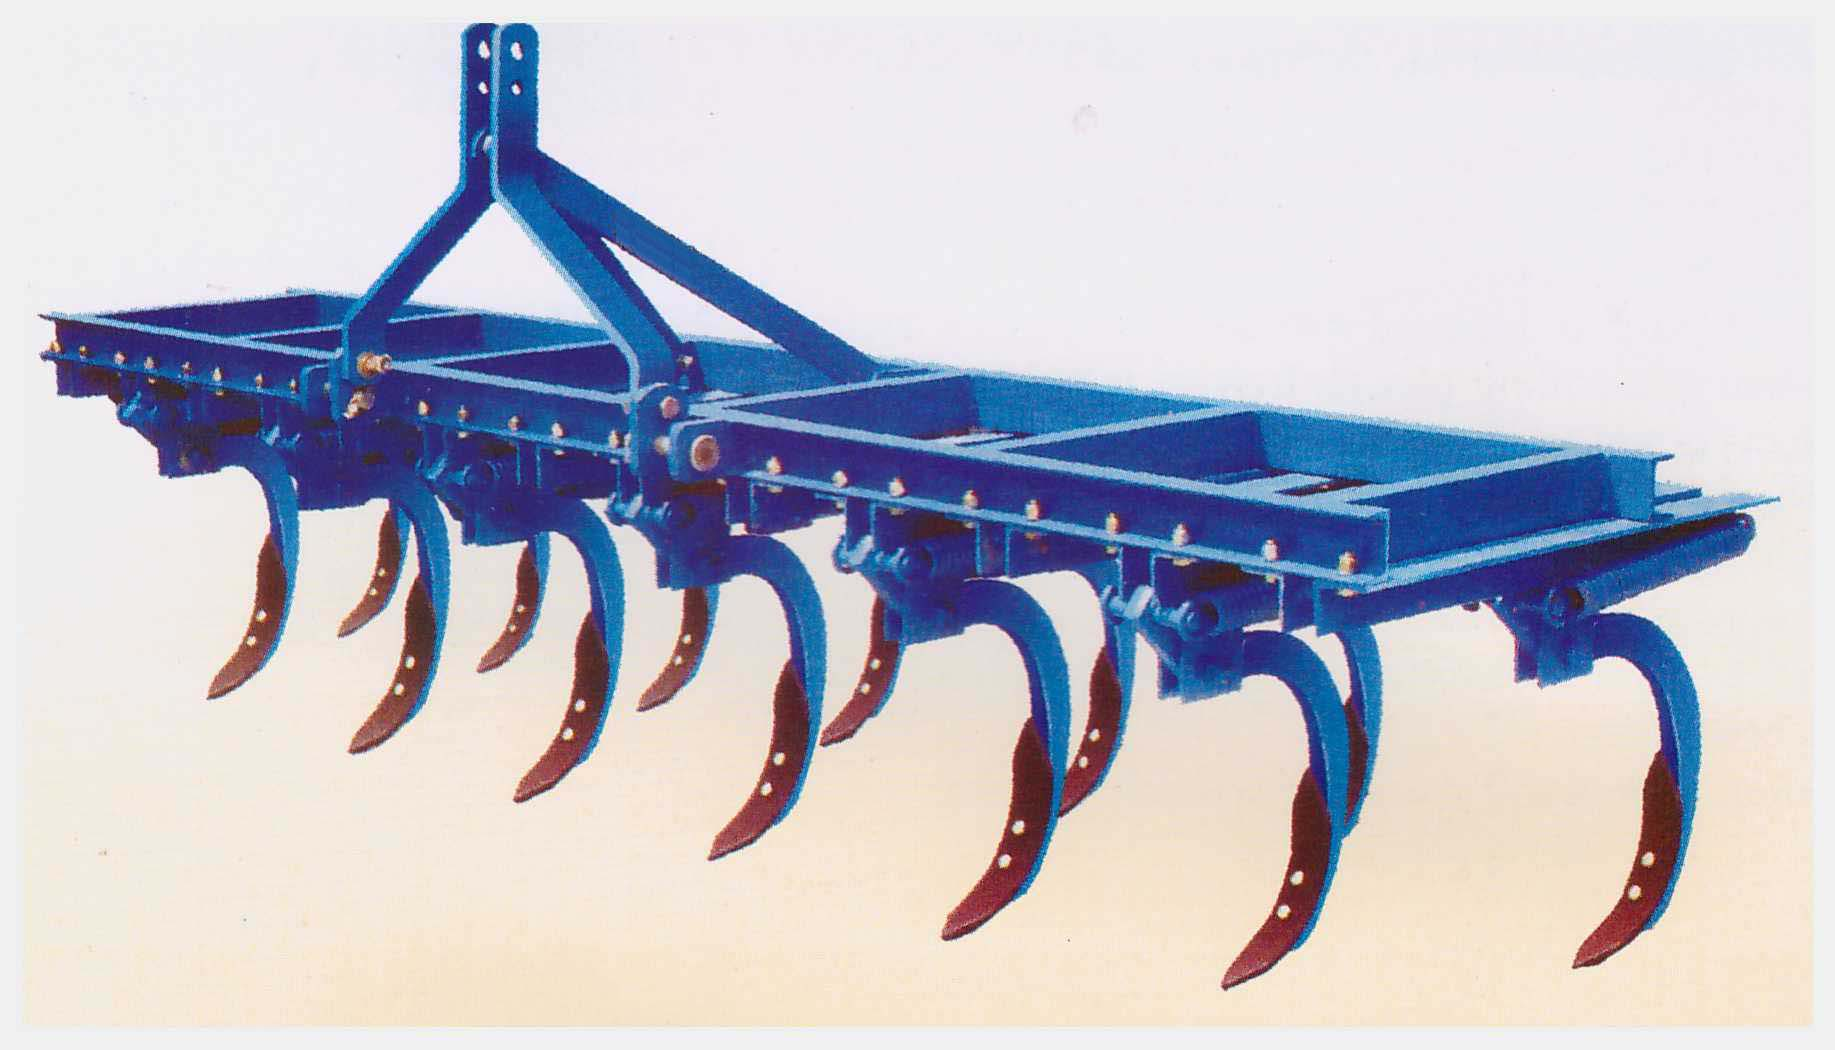 Cultivator Manufacturer Amp Manufacturer From India Id